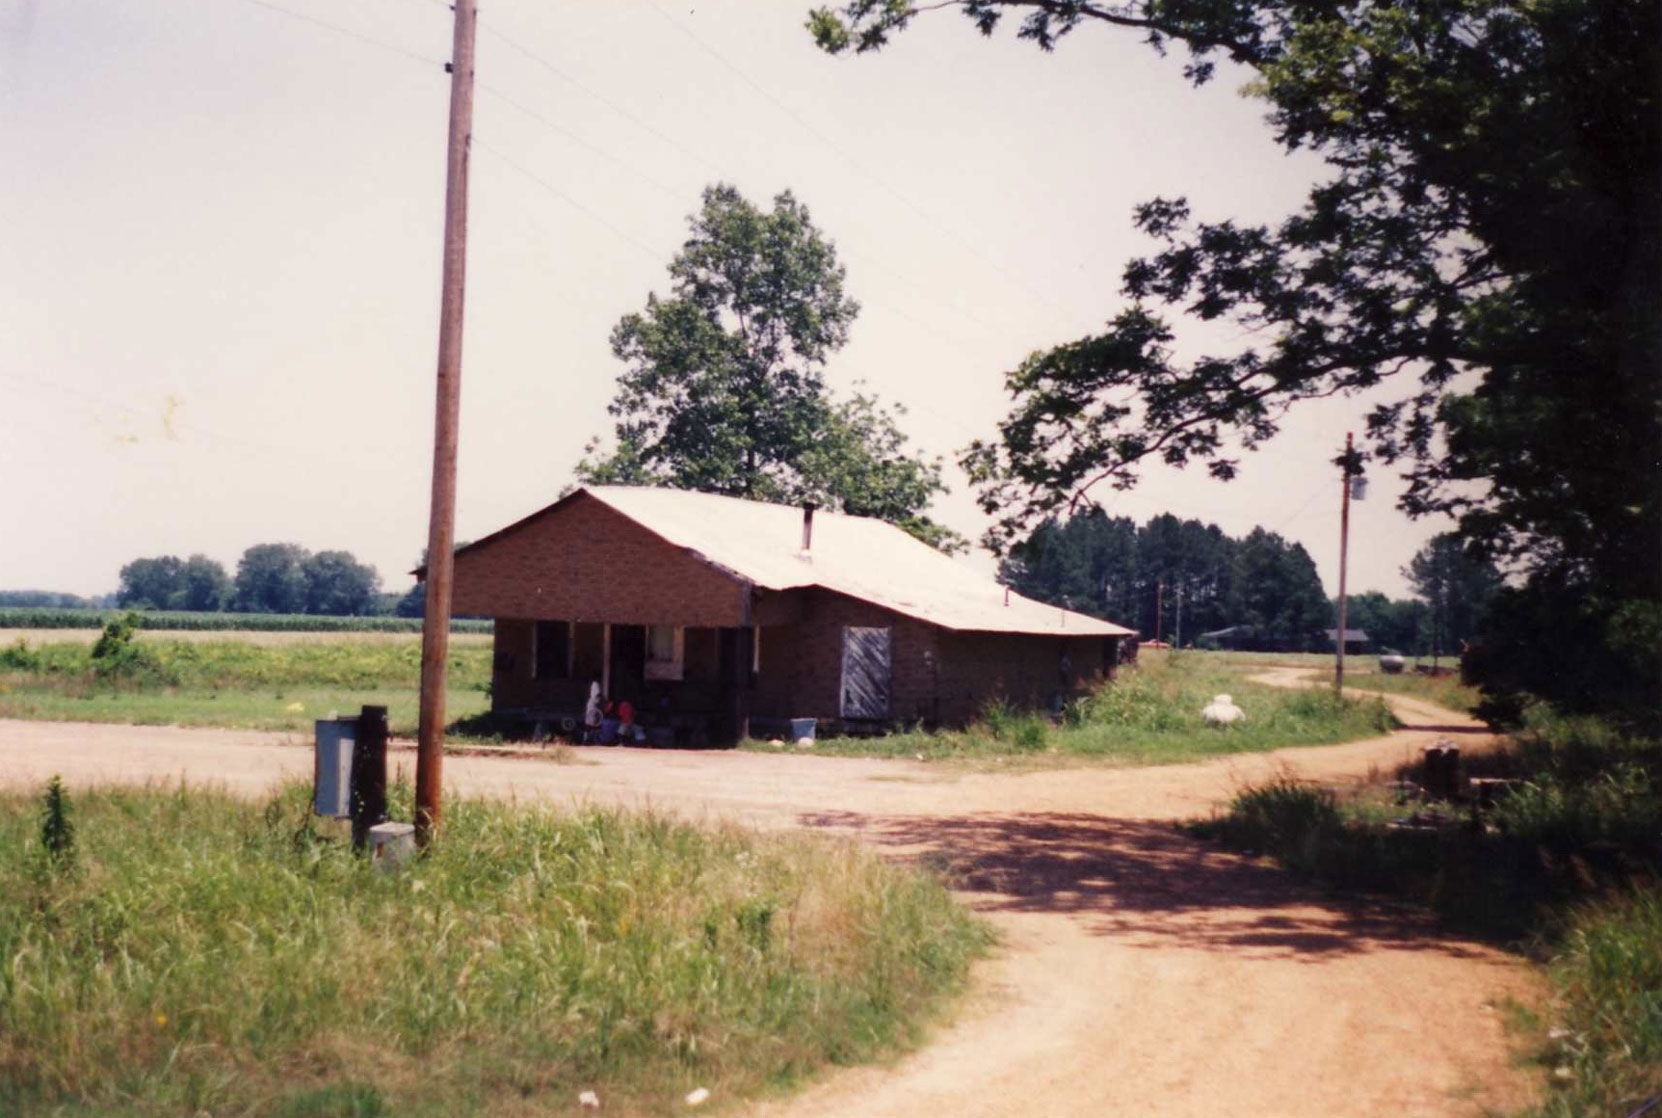 The Three Forks store, Quito, Mississippi, circa 1993. It is no longer extant. (photo: Terry Baker)